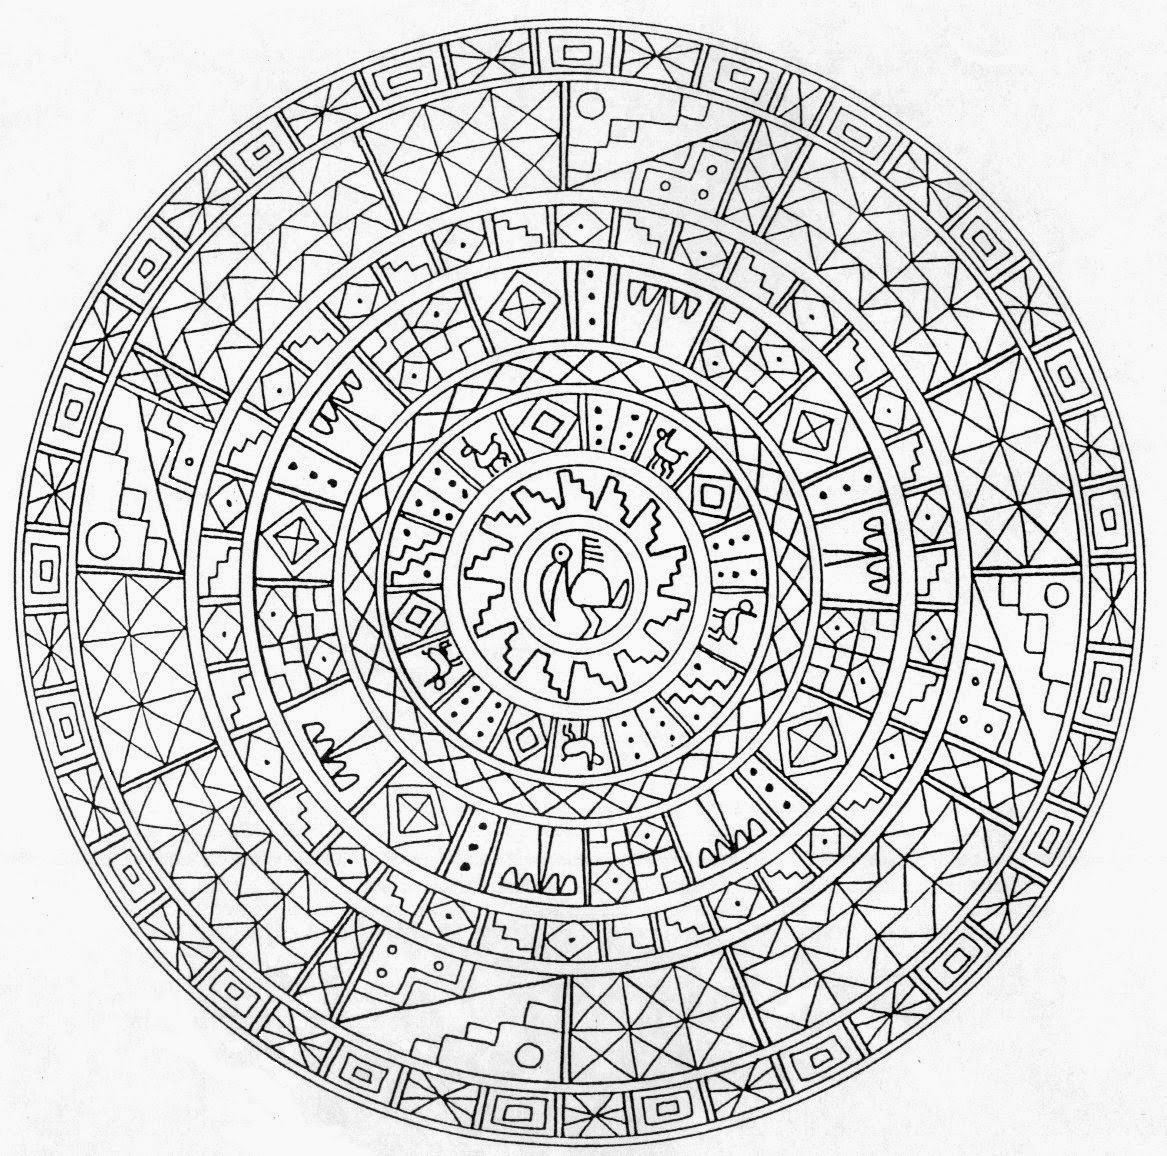 free mandala coloring pages for adults free printable mandala coloring pages for adults best for pages free coloring mandala adults